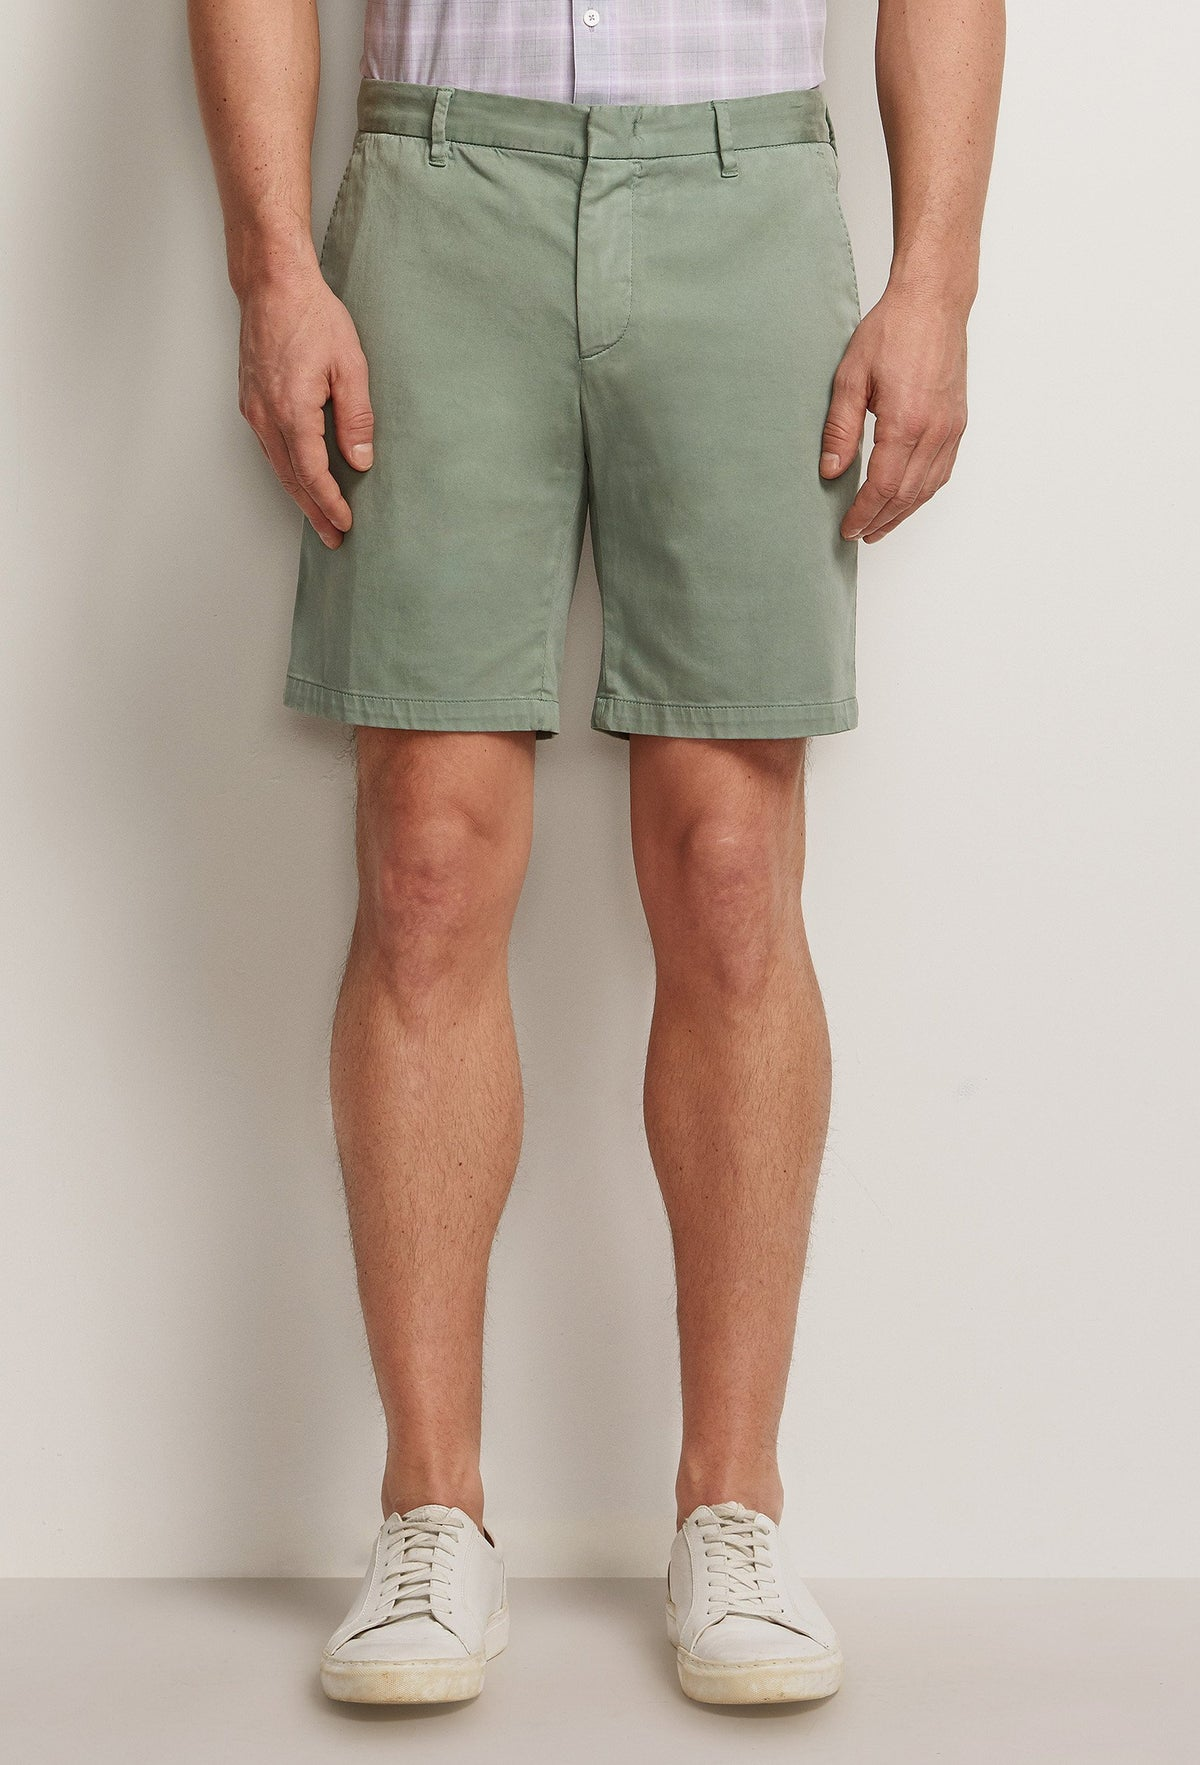 men's lightweight grey cotton shorts with pockets